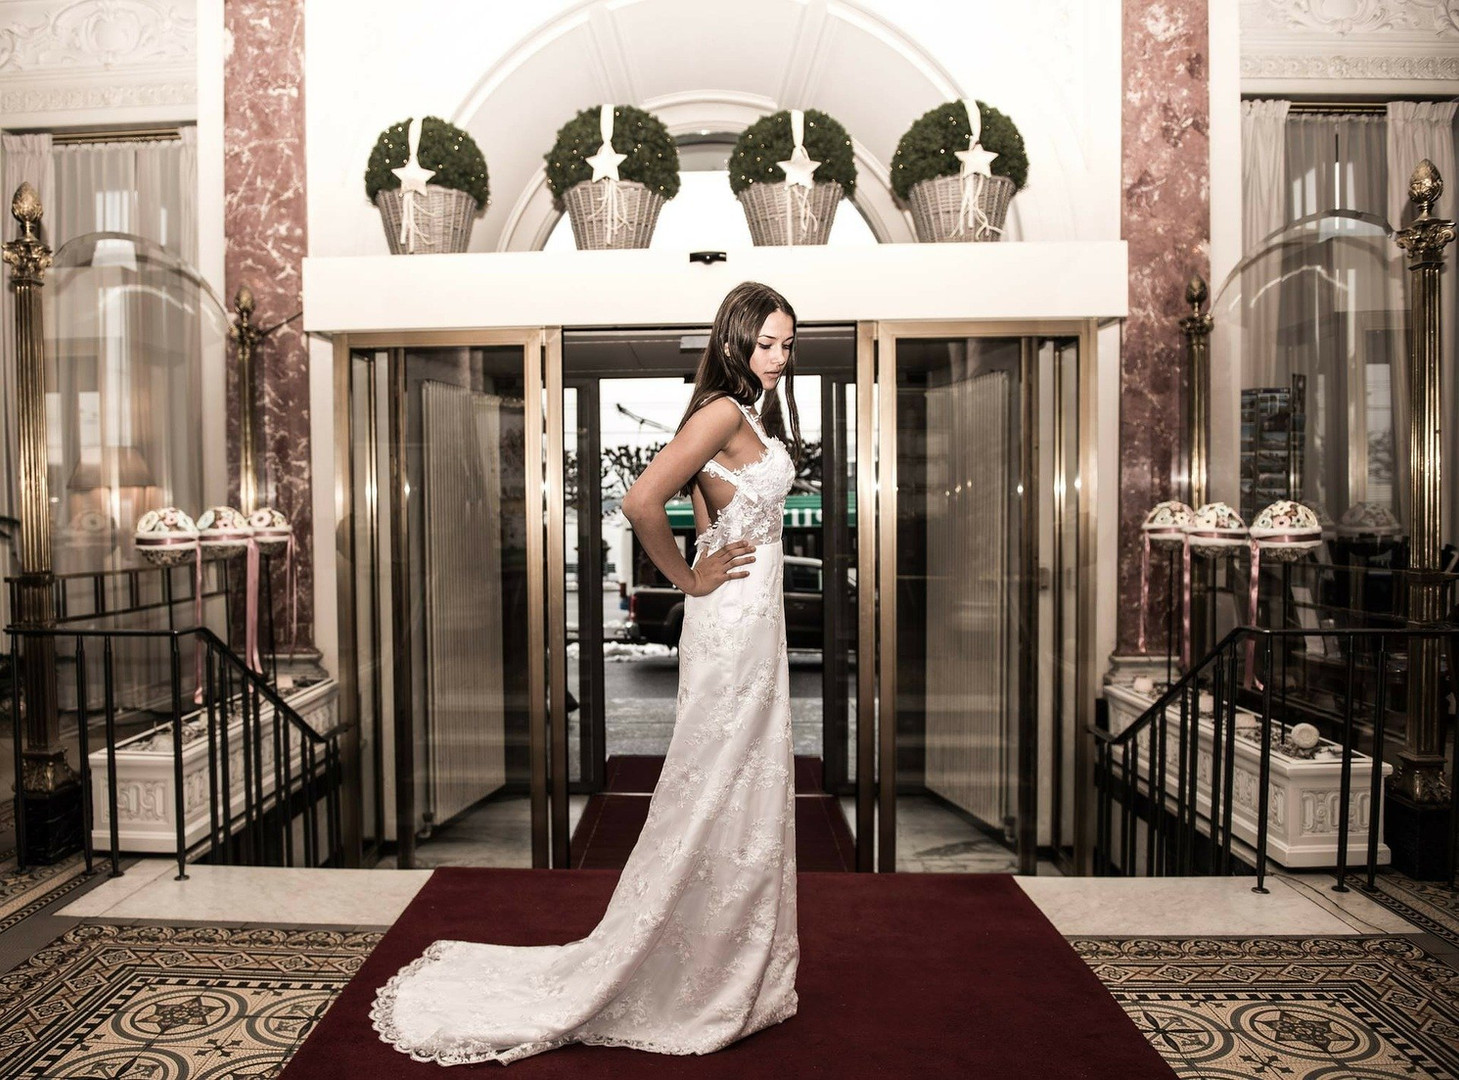 Wedding Bride in Hotel.jpg